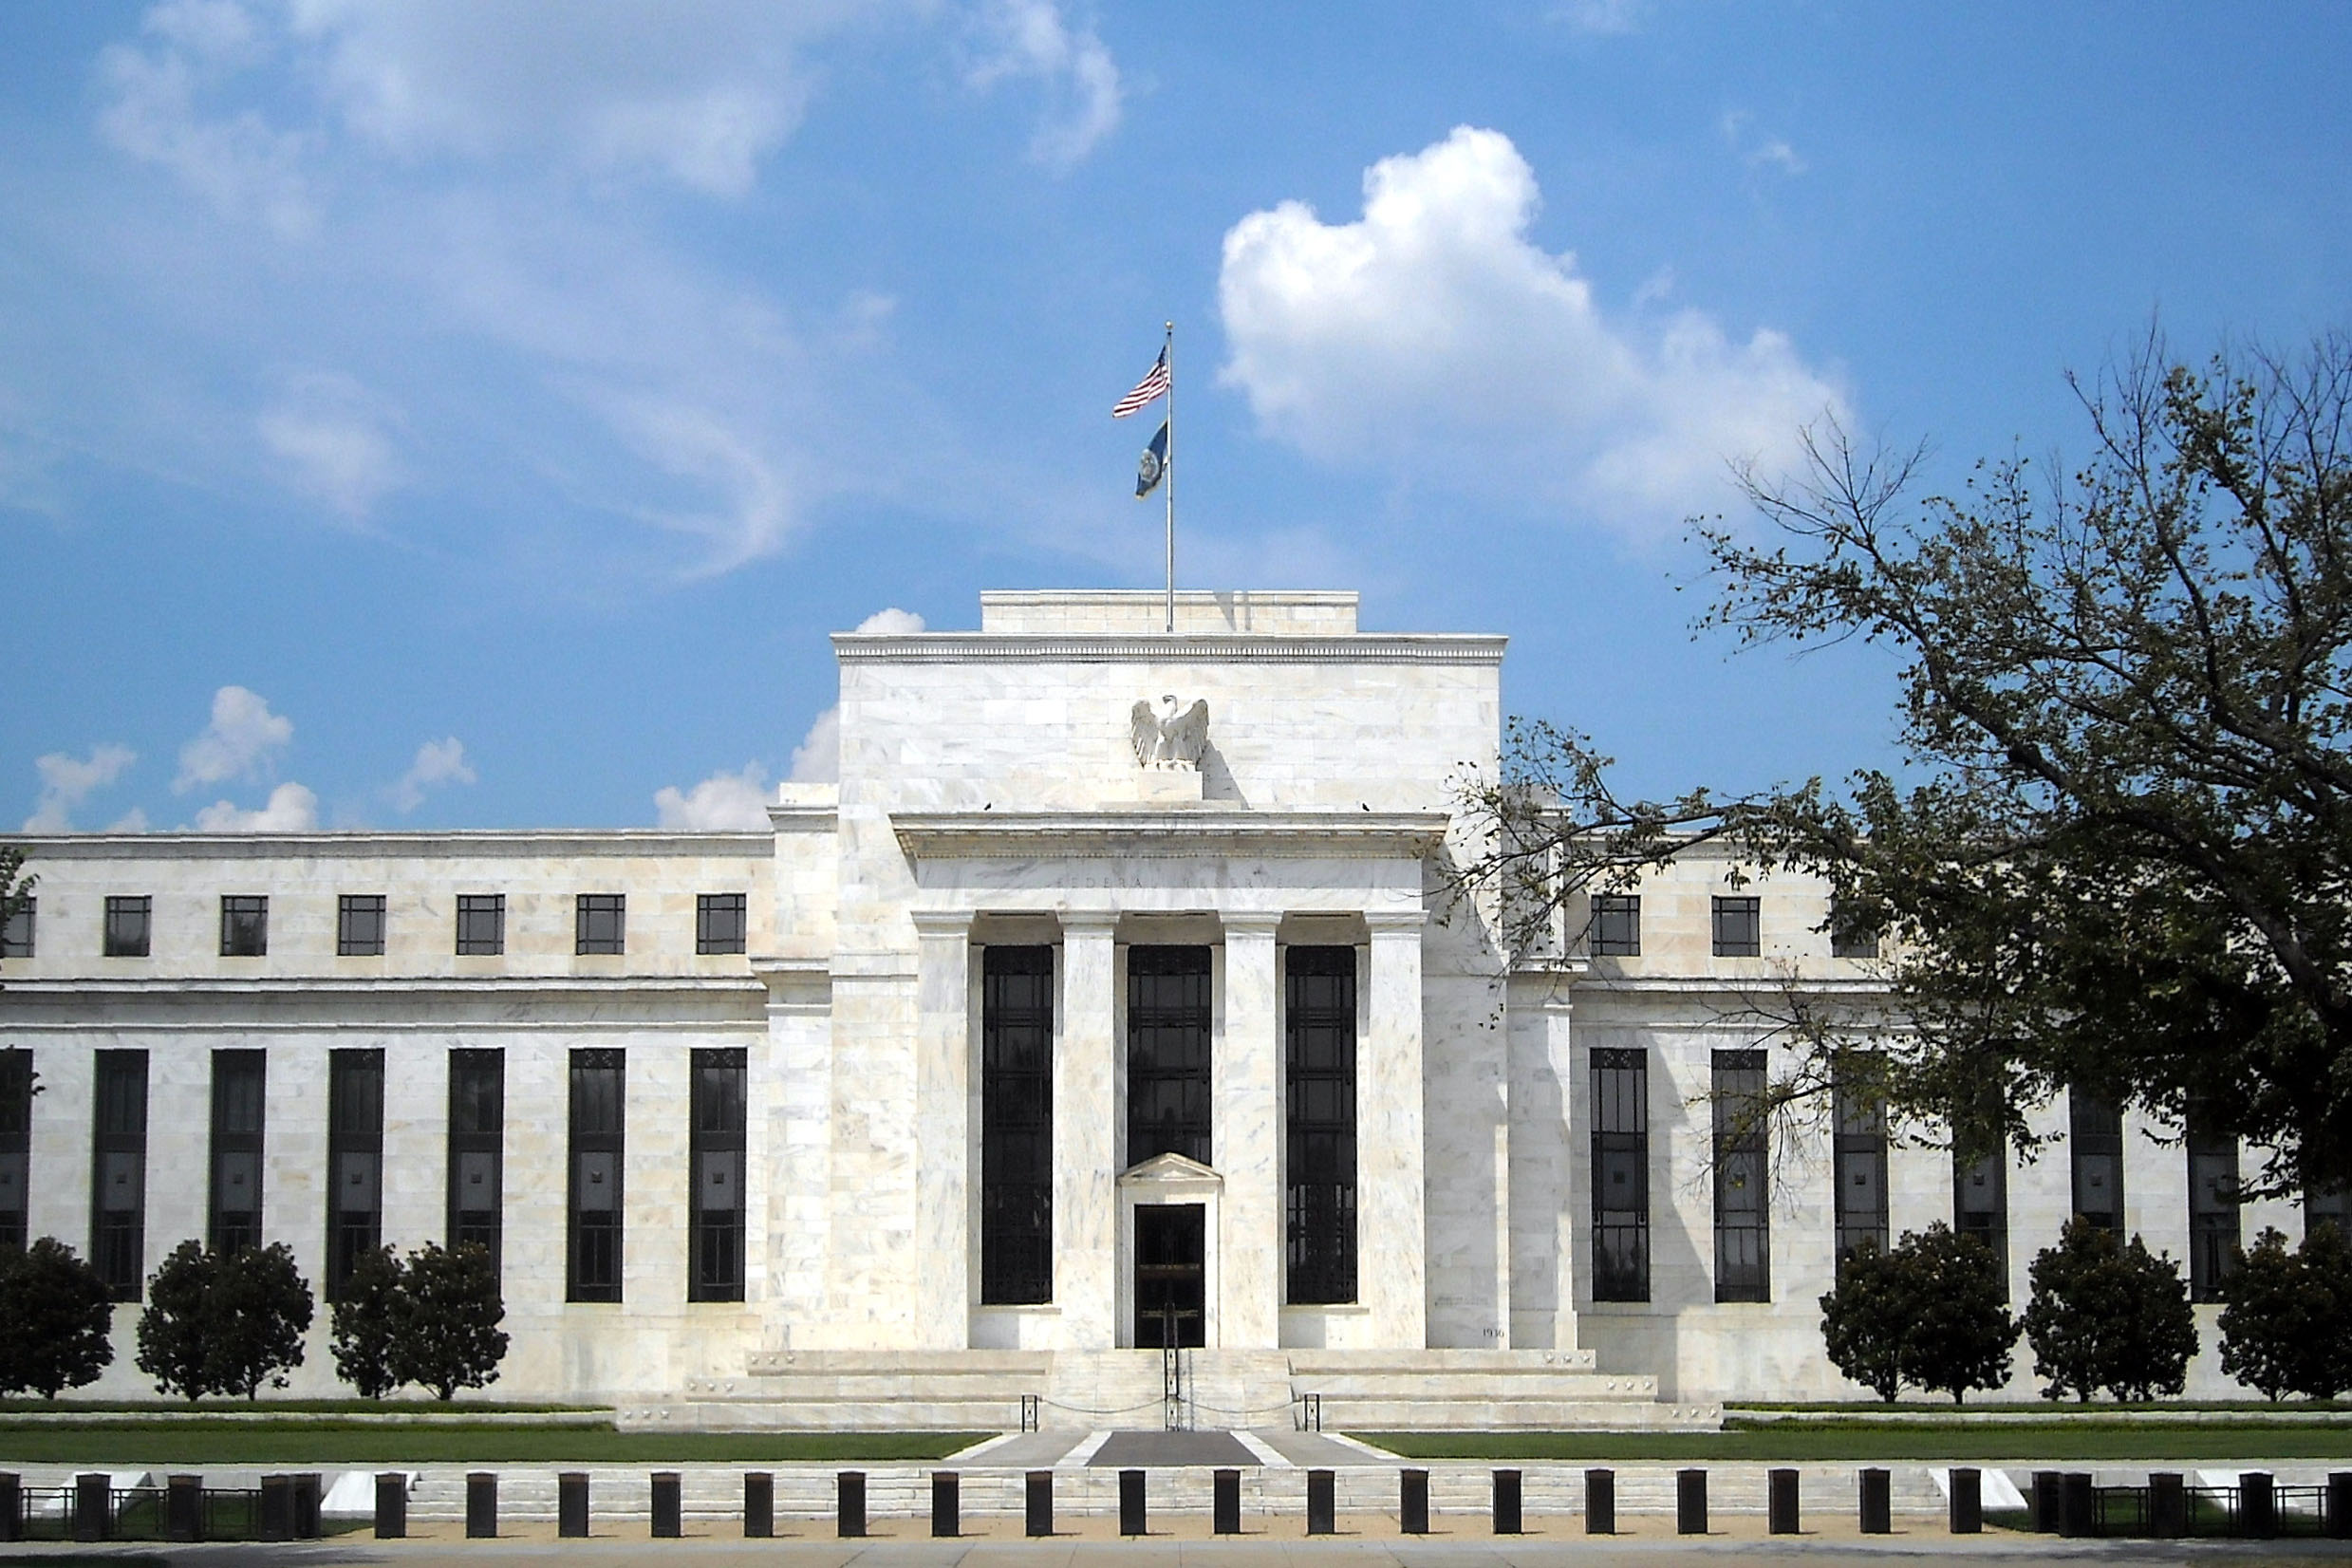 The Fed is set to raise interest rates by the end of this year.